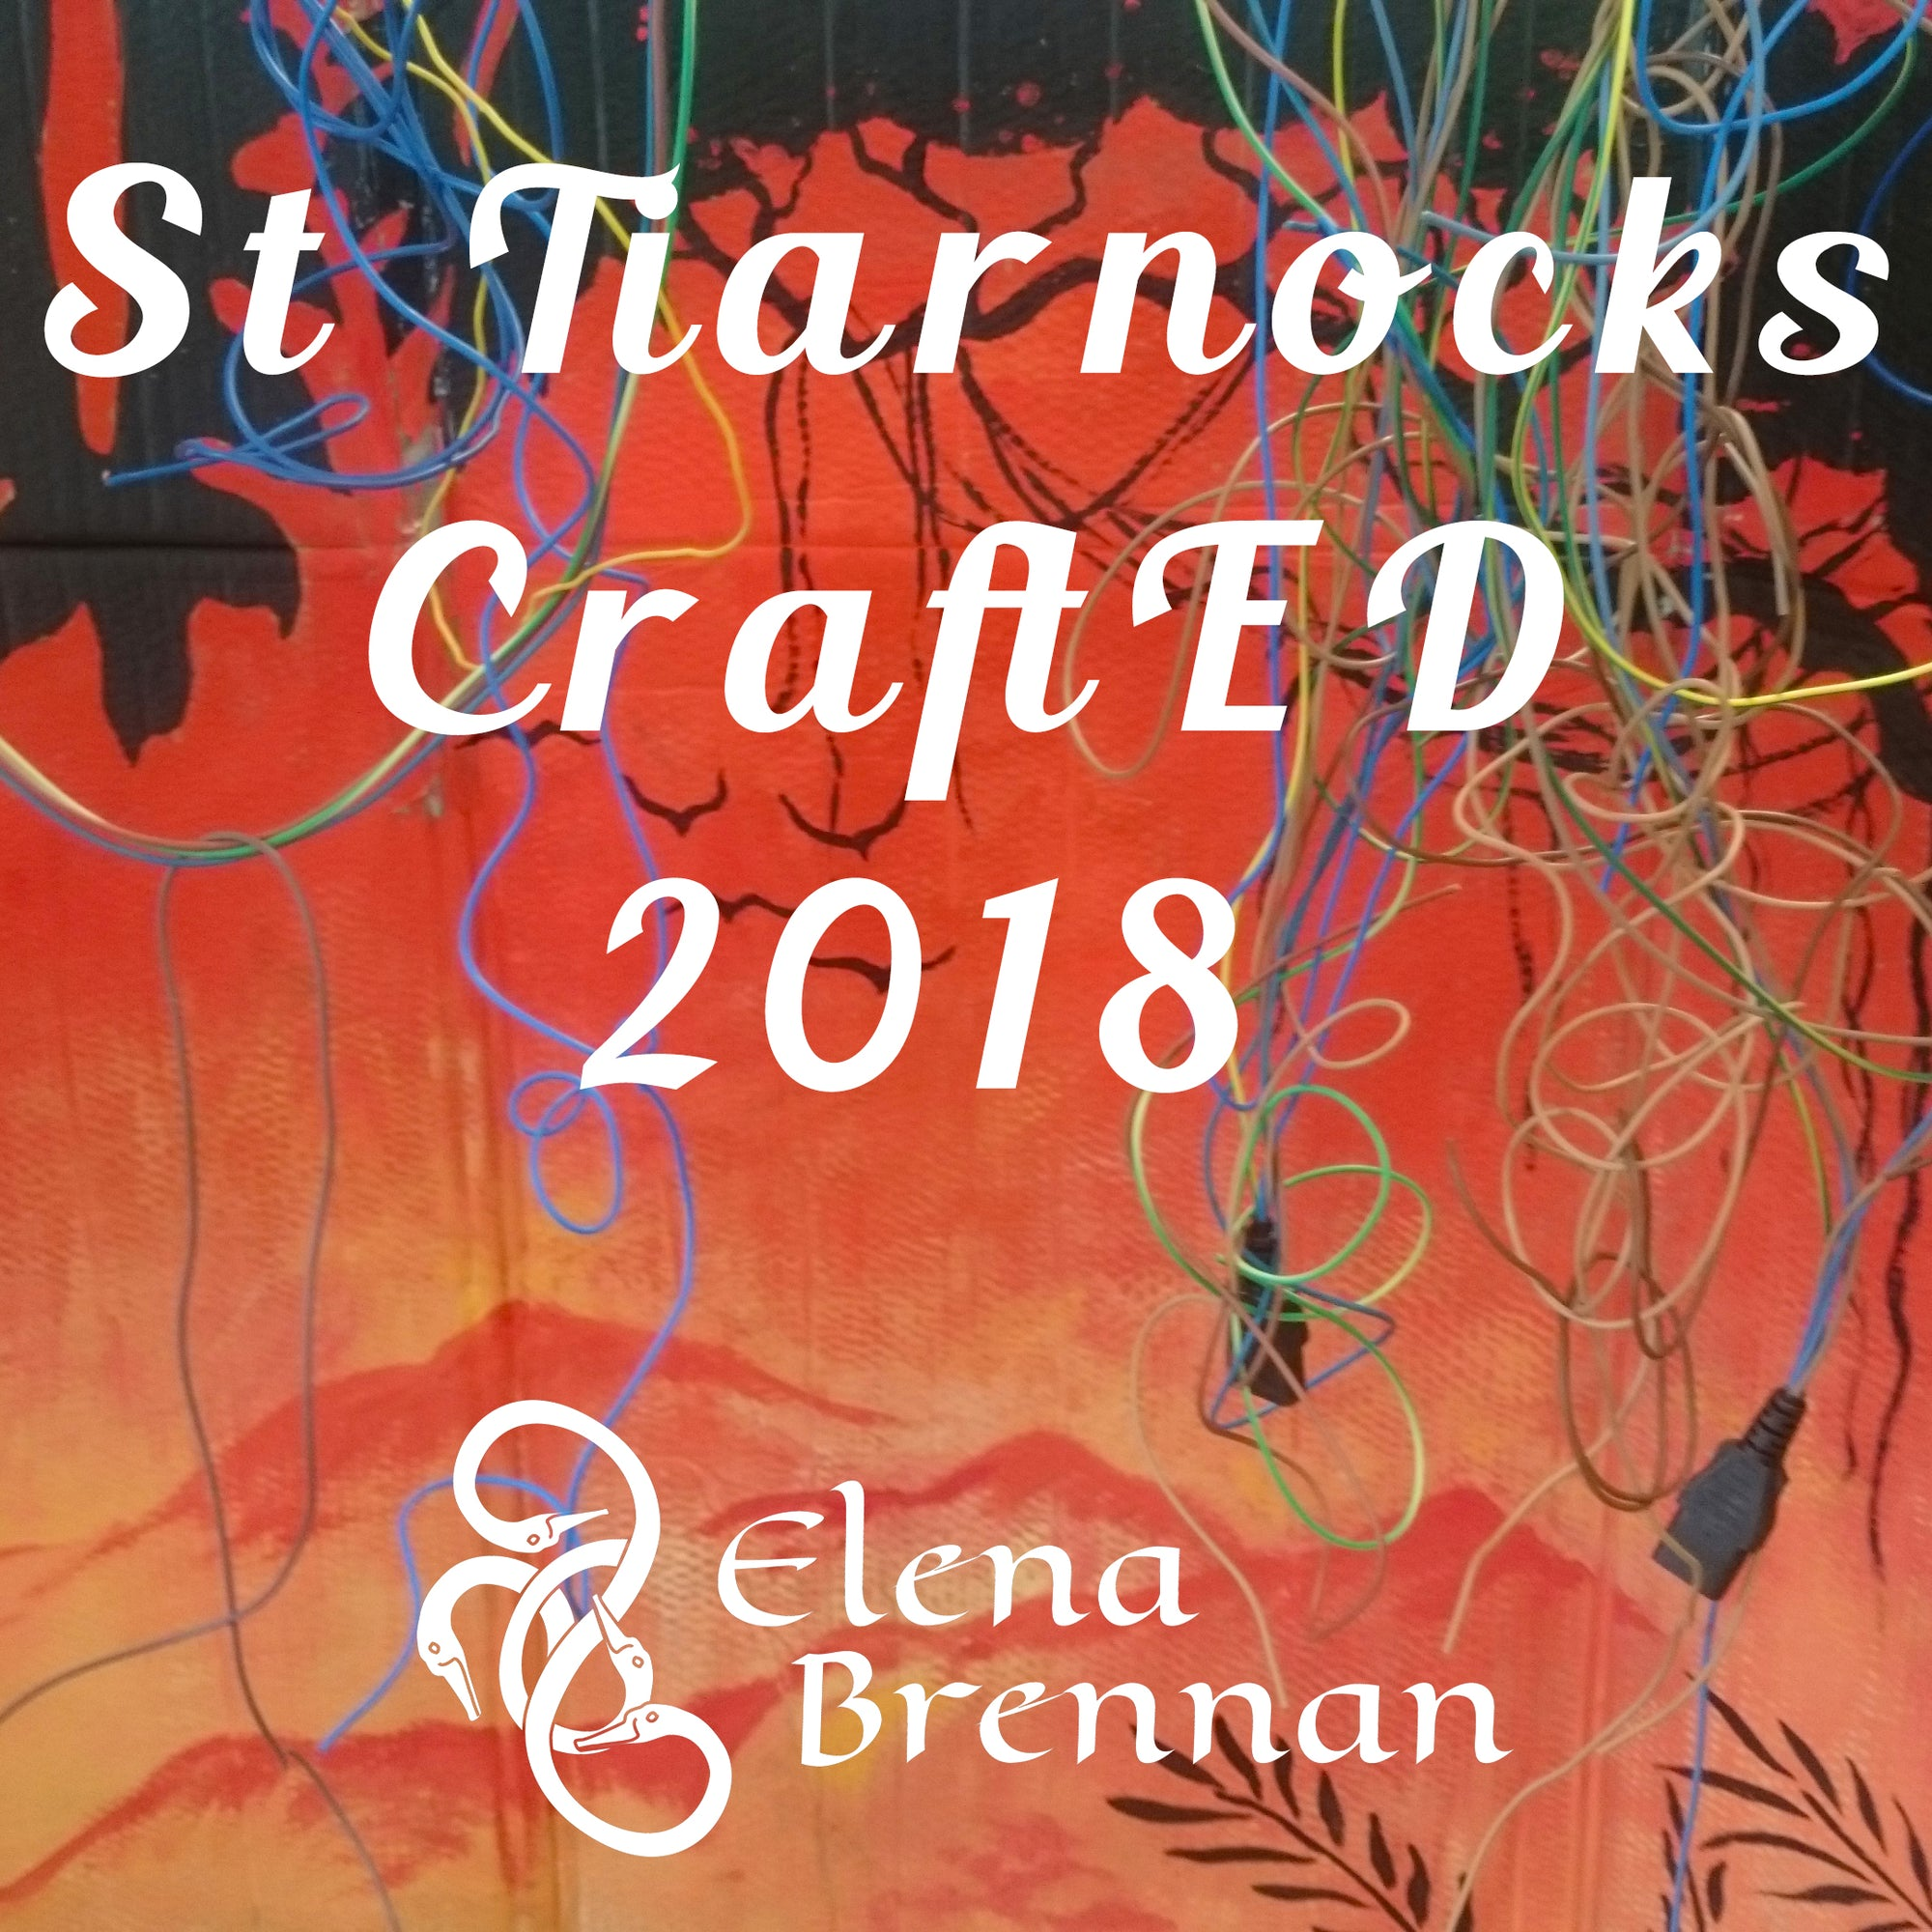 CraftED 2nd Class St Tiarnocks Monaghan 2018